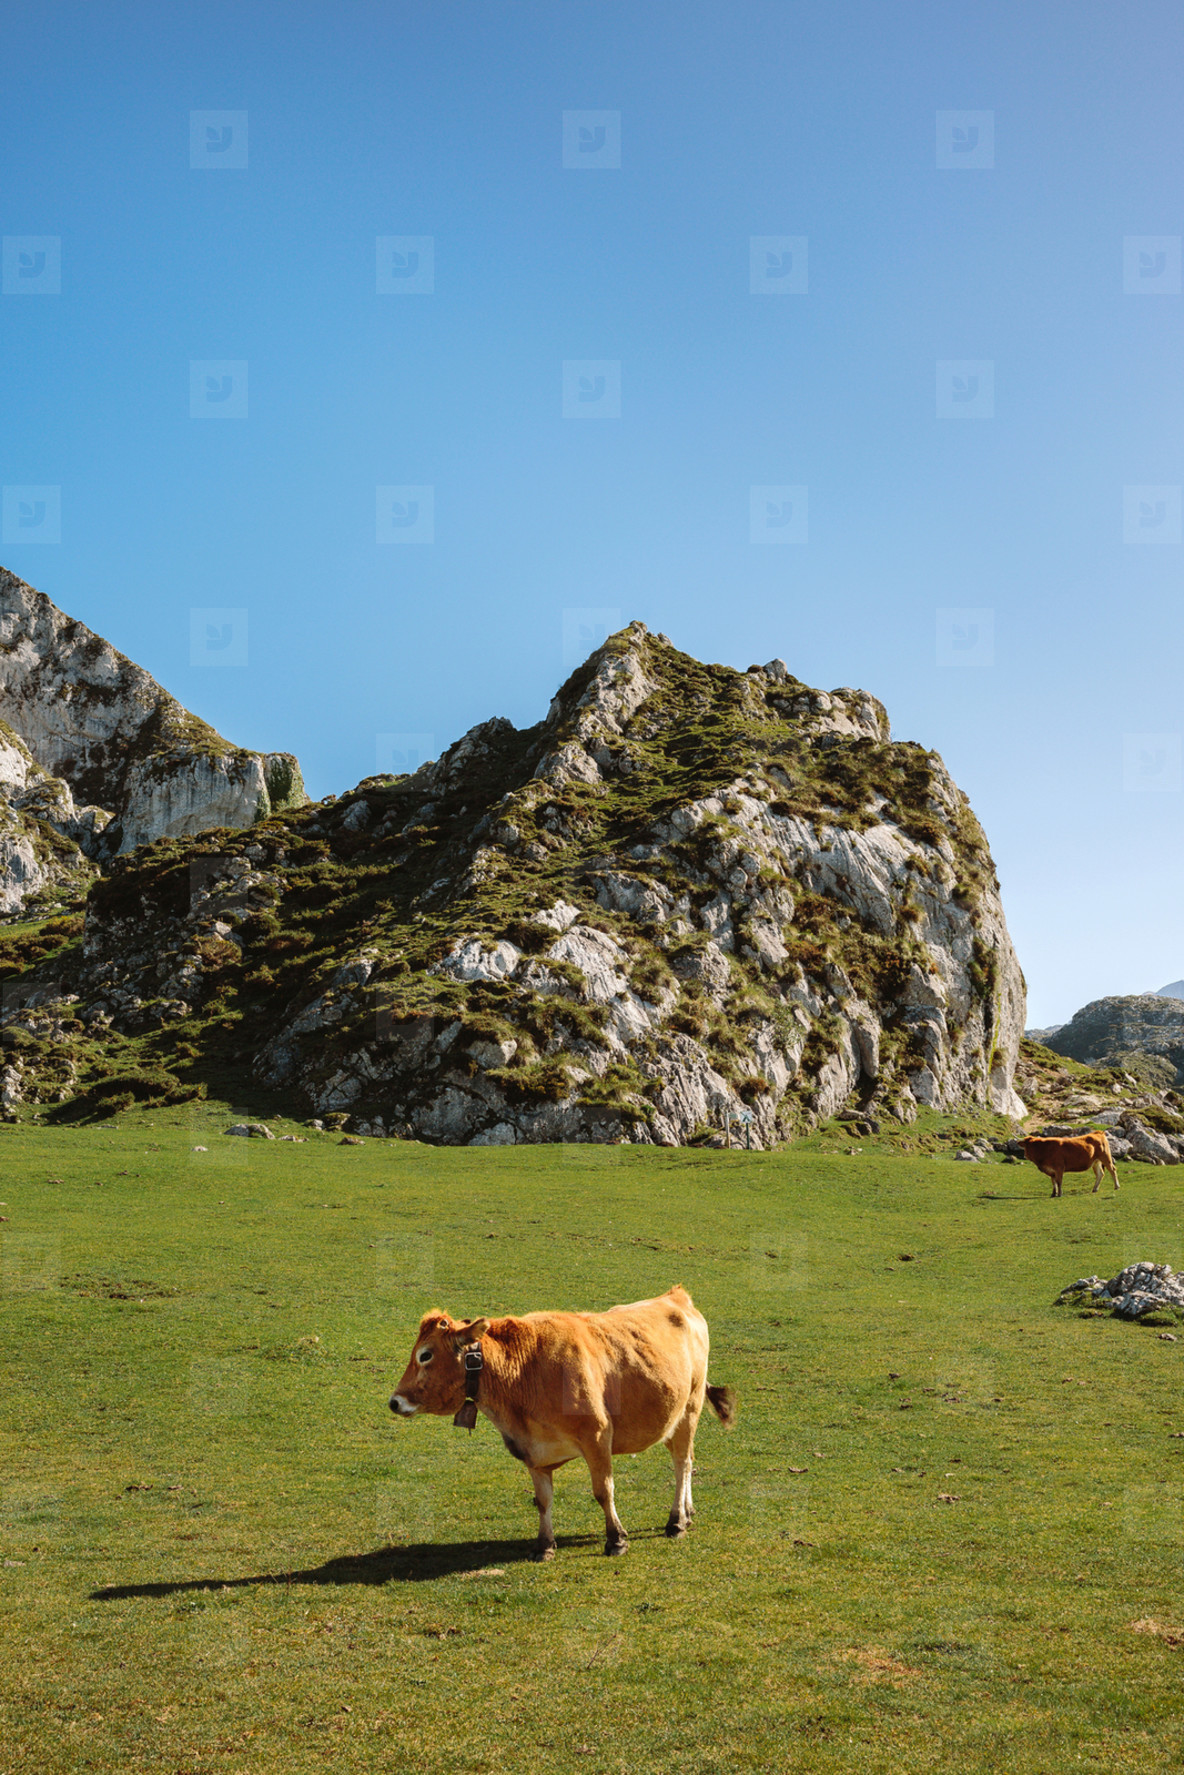 Cow walking through the grass